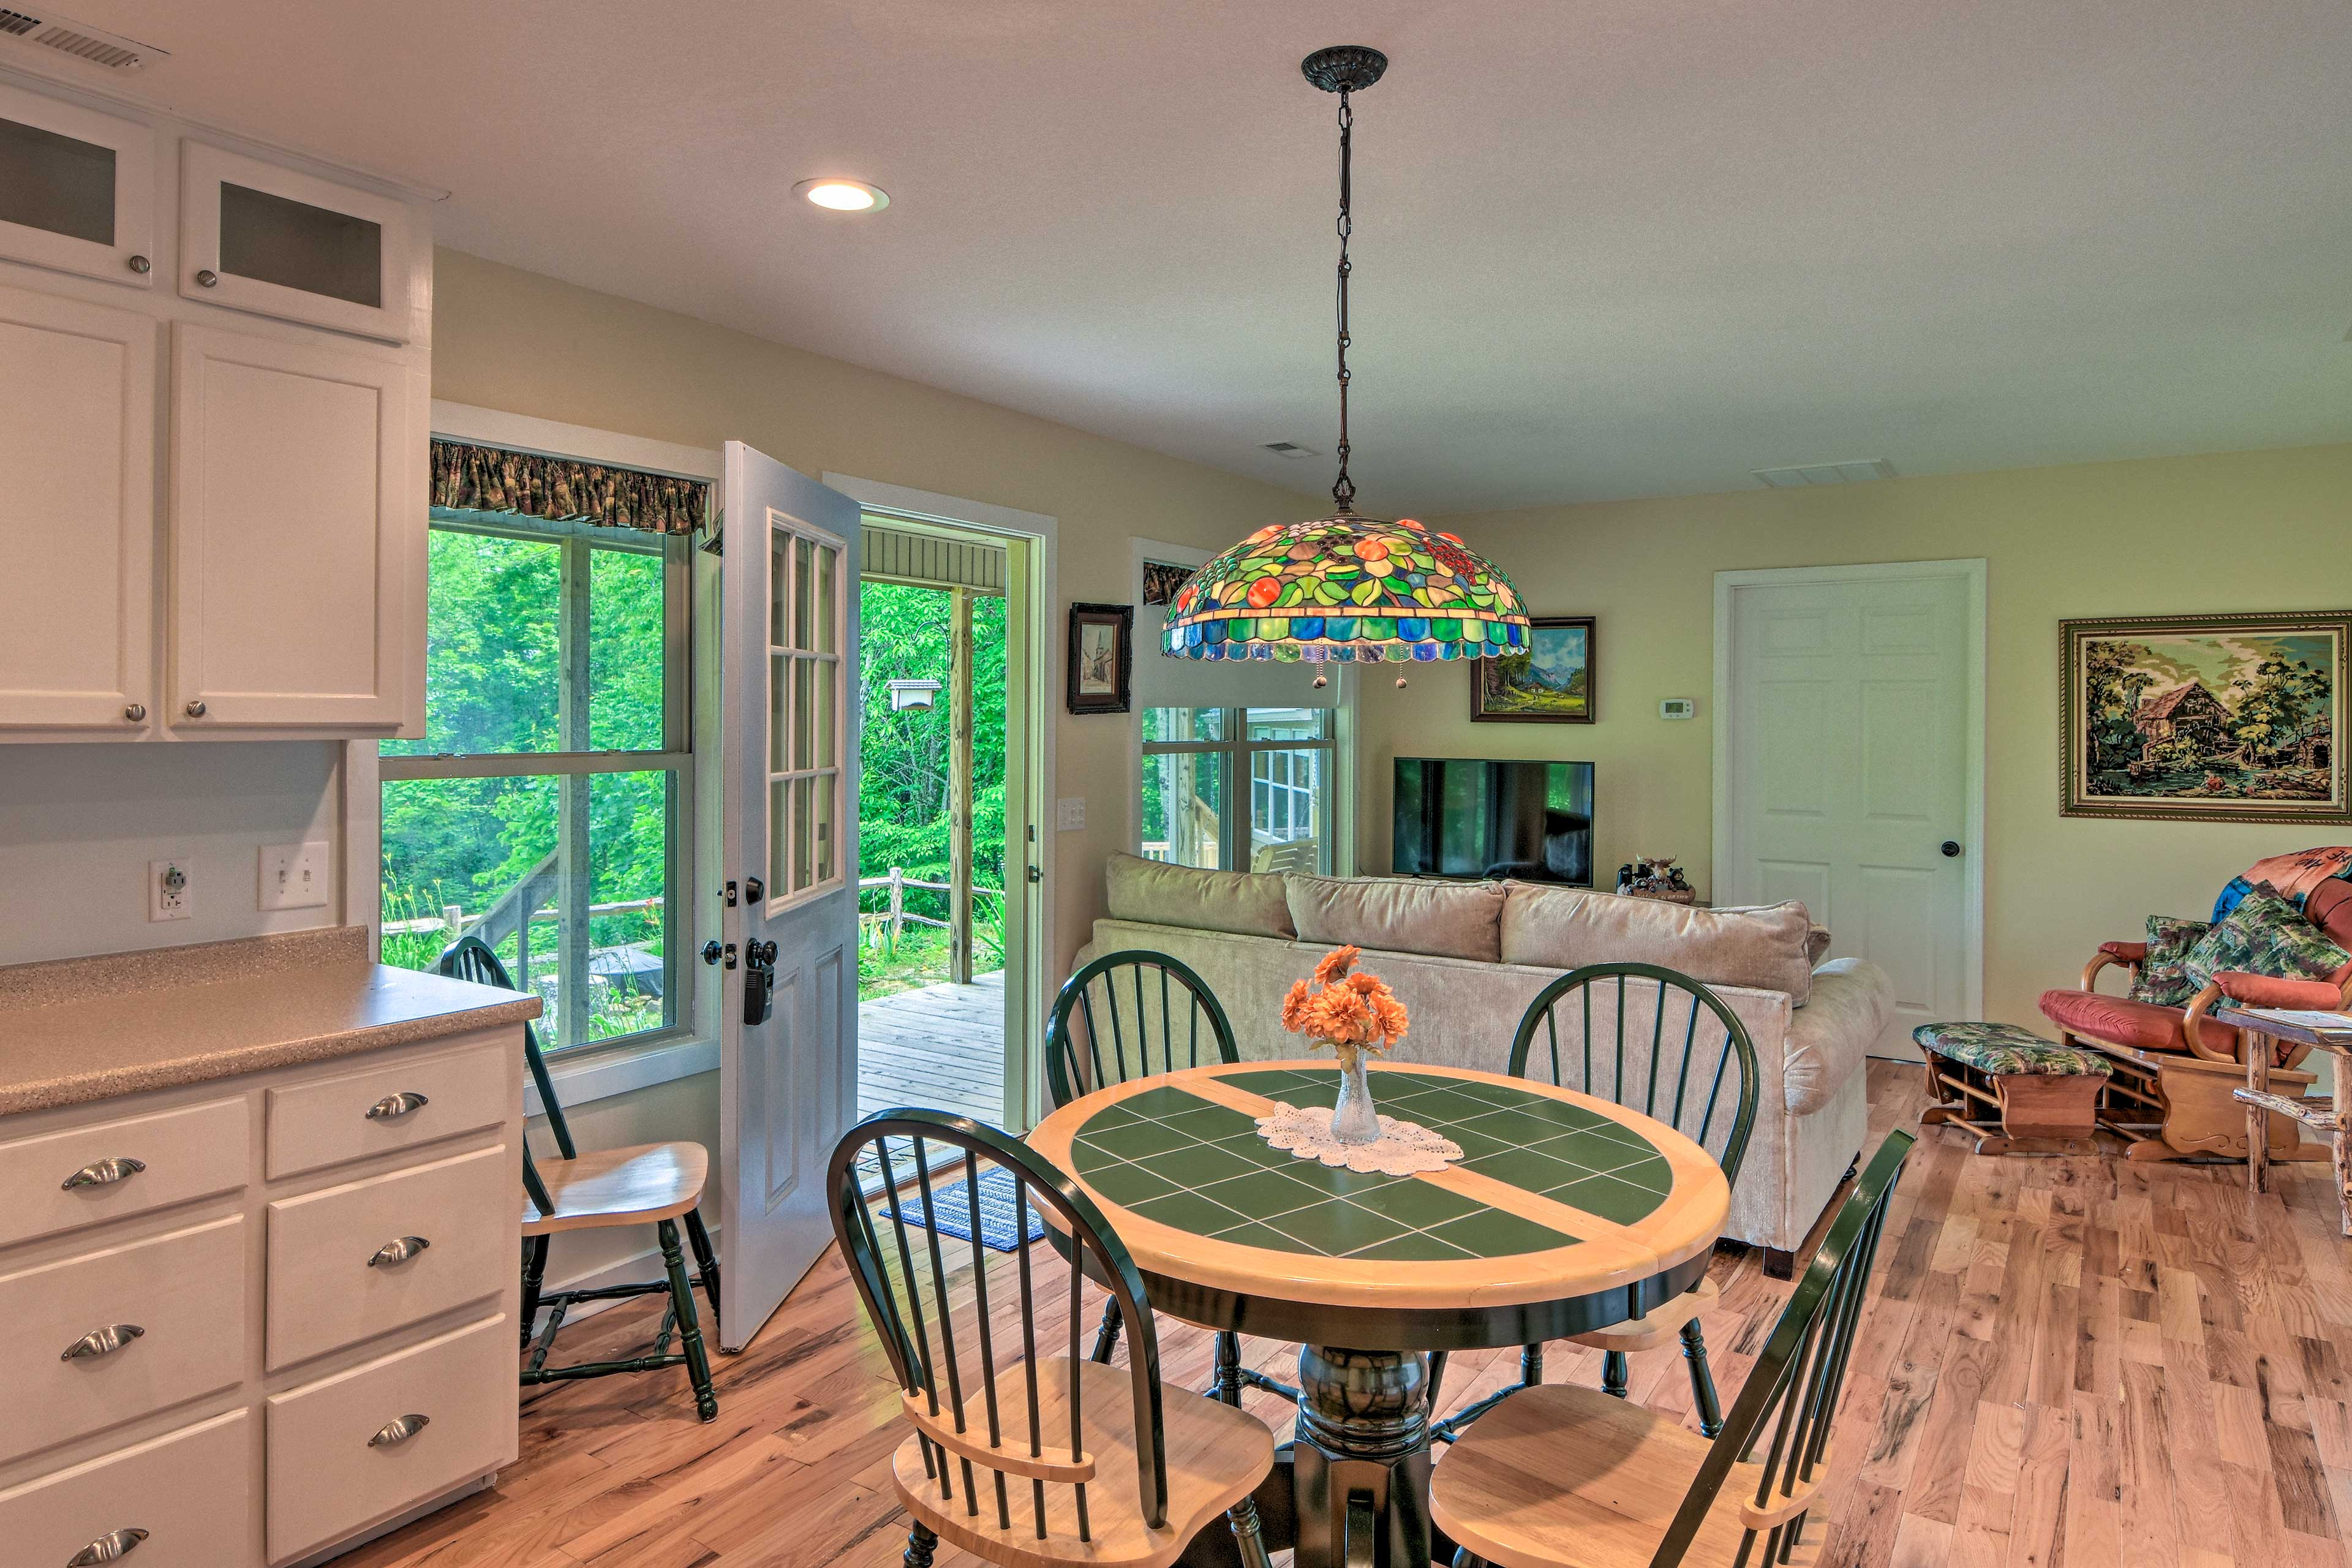 The charming cottage sleeps up to 4 guests comfortably.